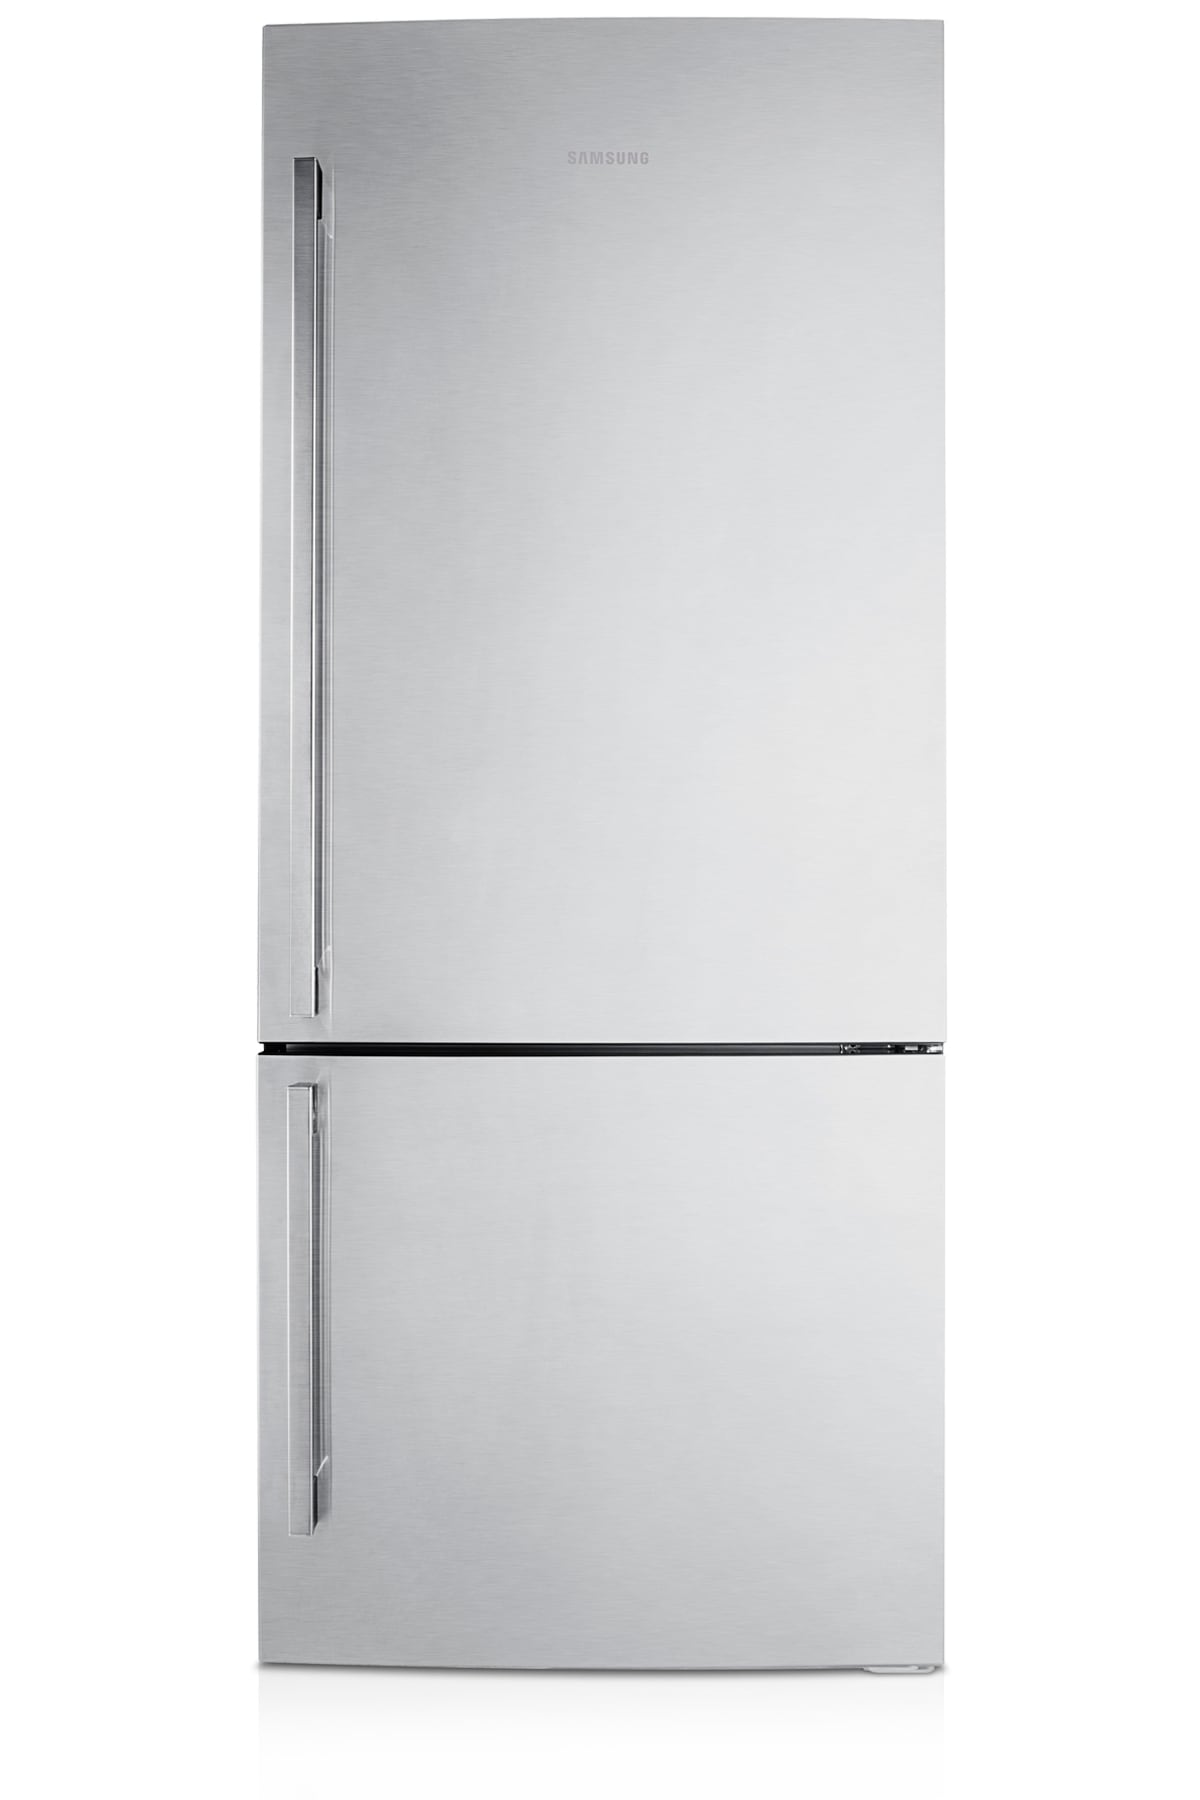 SRL450ELS 450L Capacity Bottom Freezer Refrigerator with 3.5 Star Energy Rating